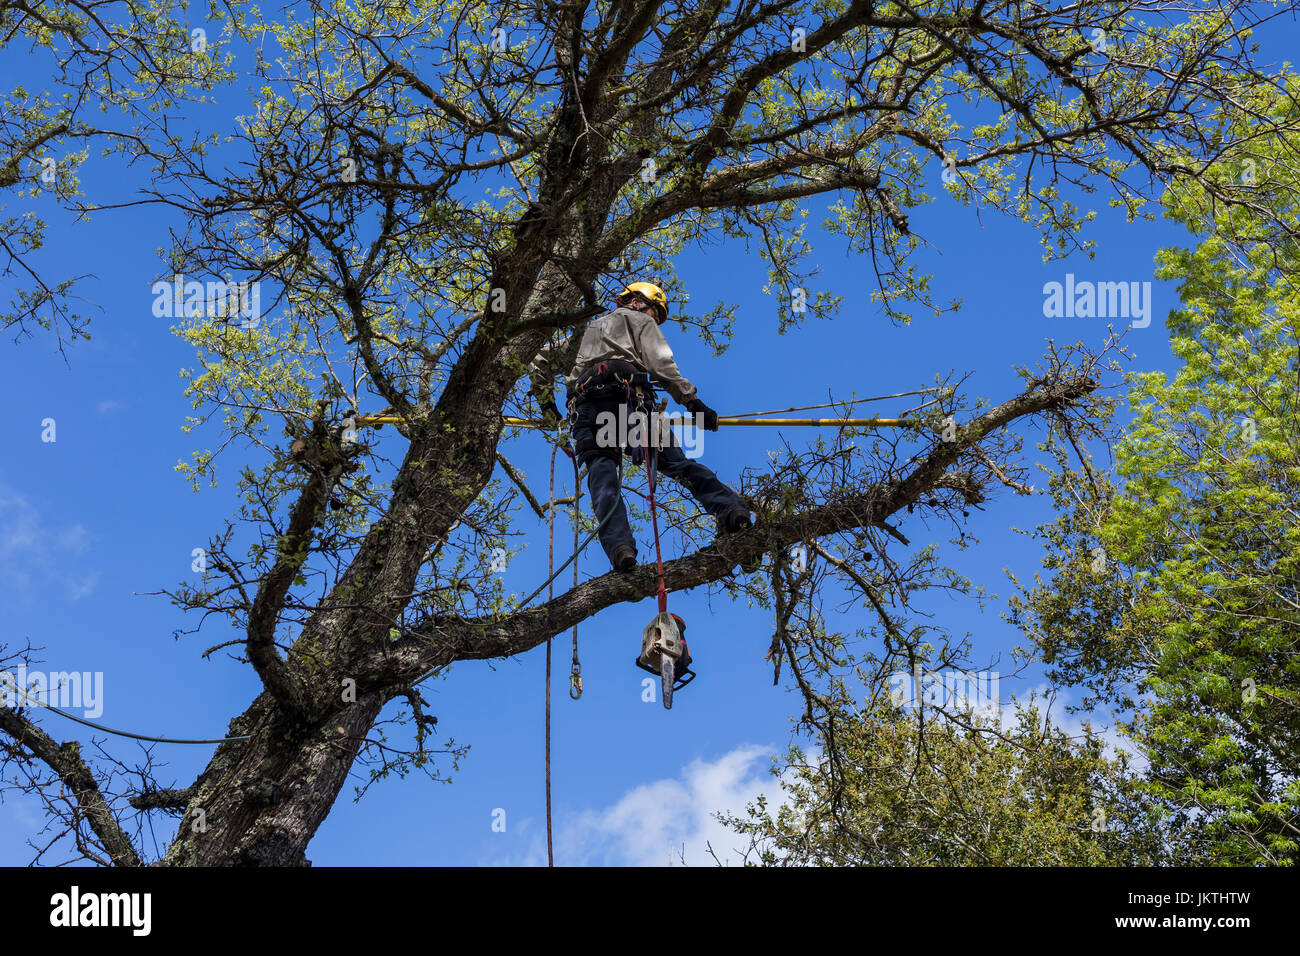 tree trimmer, tree branch trimmer, trimming tree branch, Valley Oak tree, tree care, lumberman, city of Novato, - Stock Image